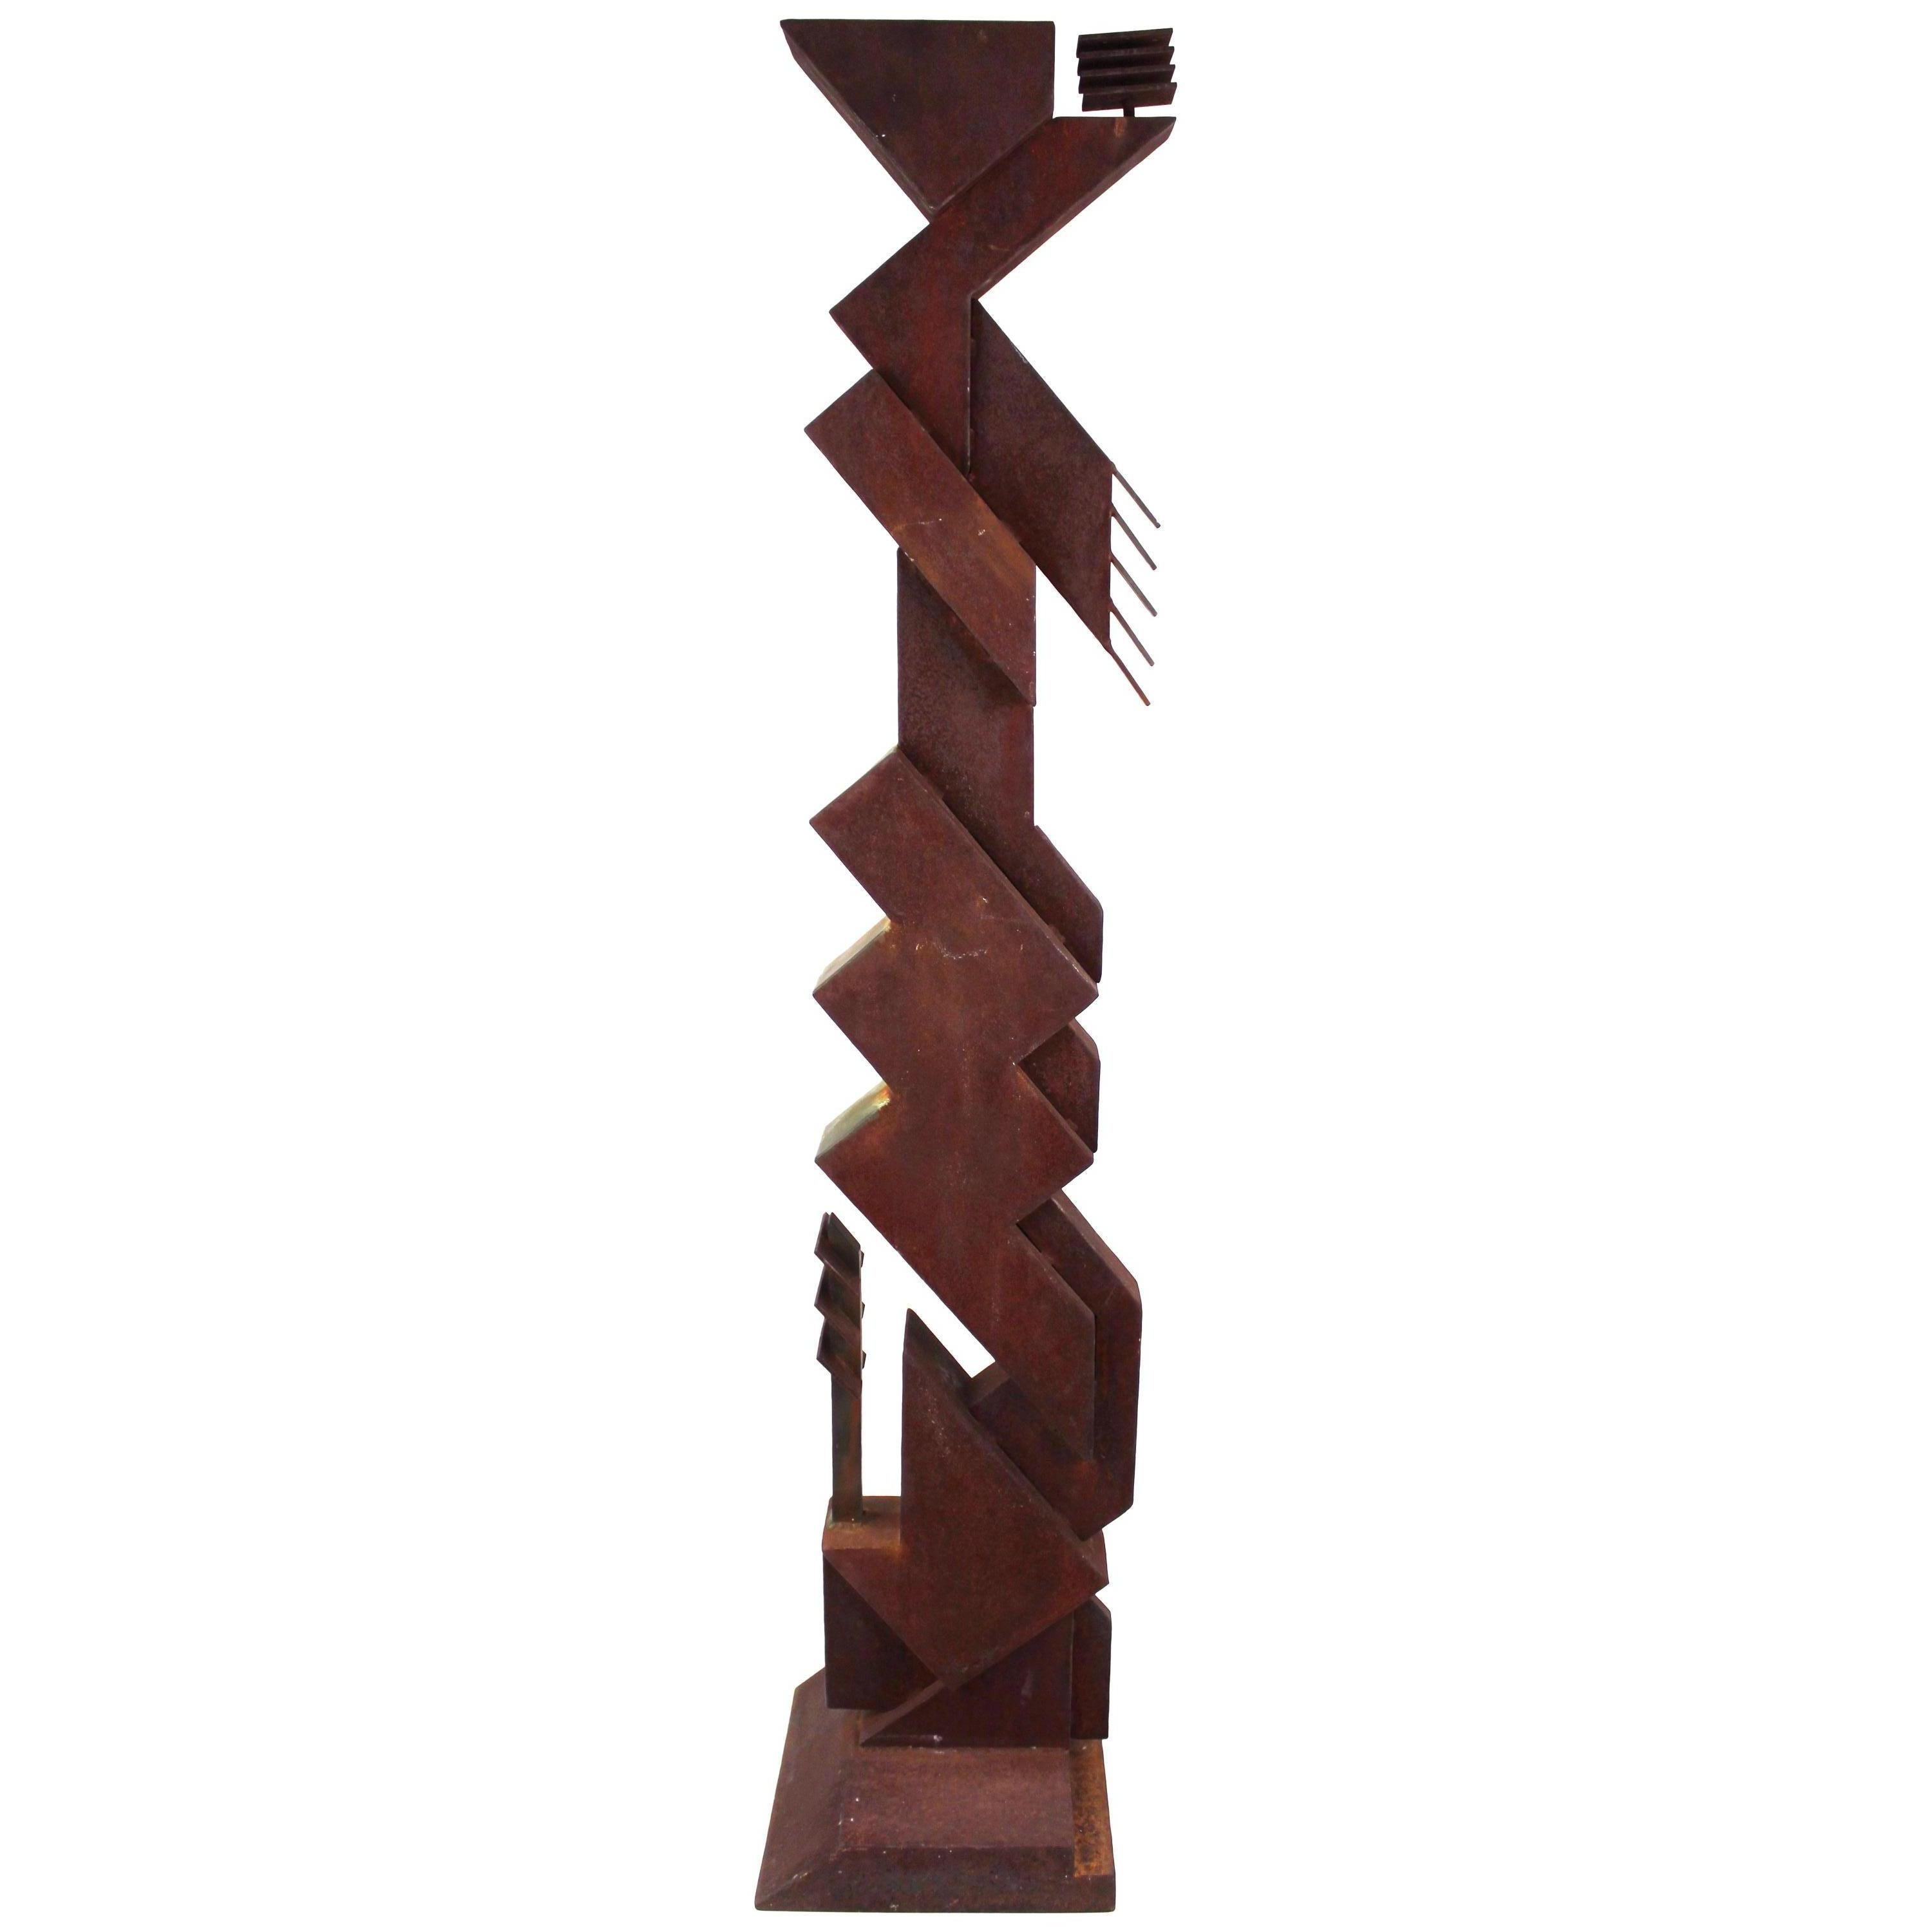 American Modern Abstract Brutalist TOTEM Sculpture